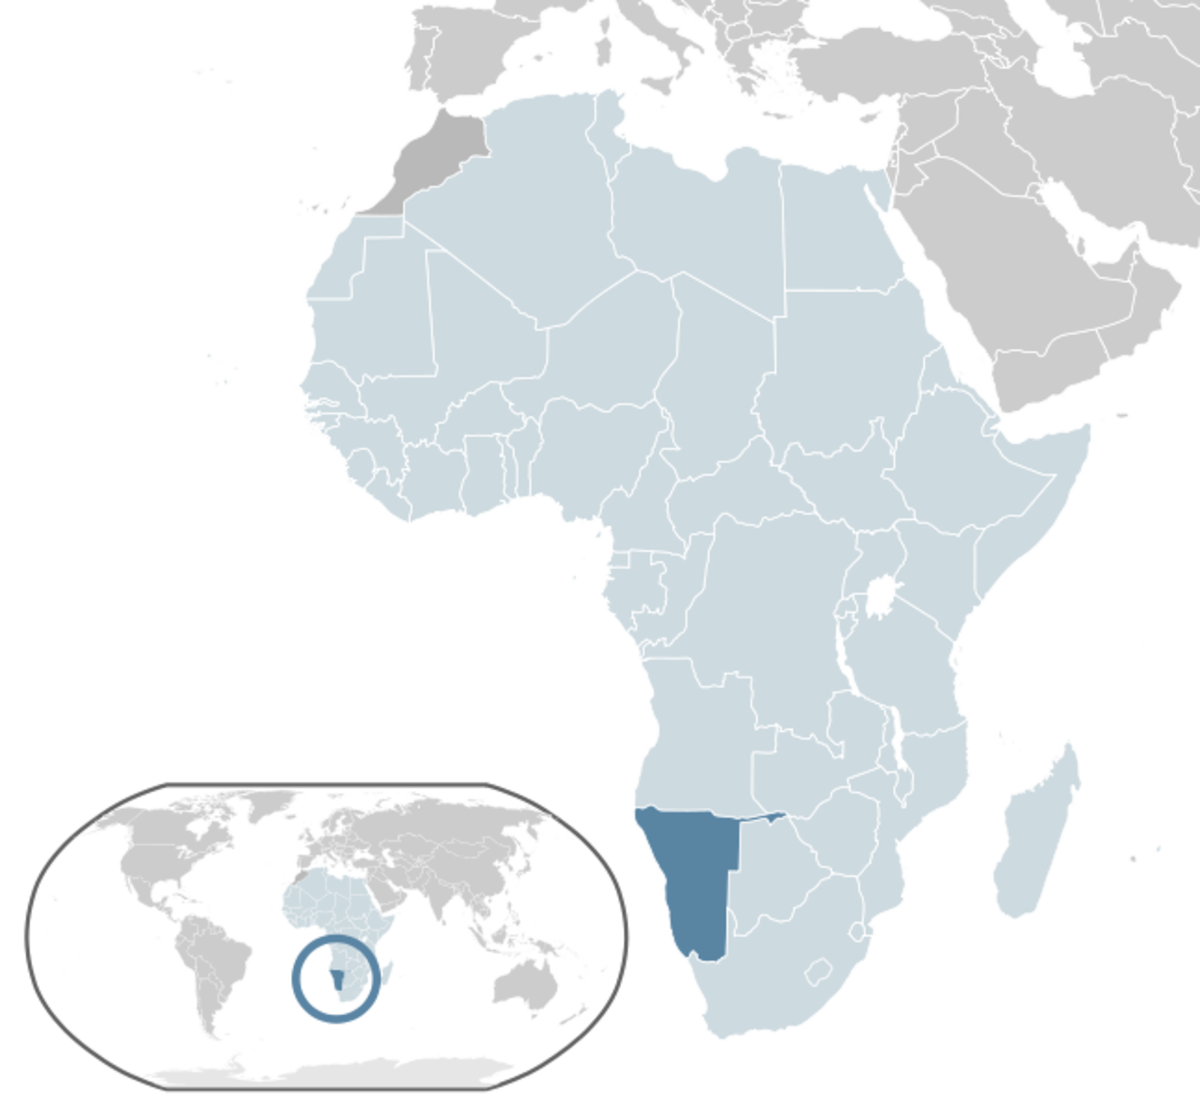 http://en.wikipedia.org/wiki/File:Location_Namibia_AU_Africa.svg